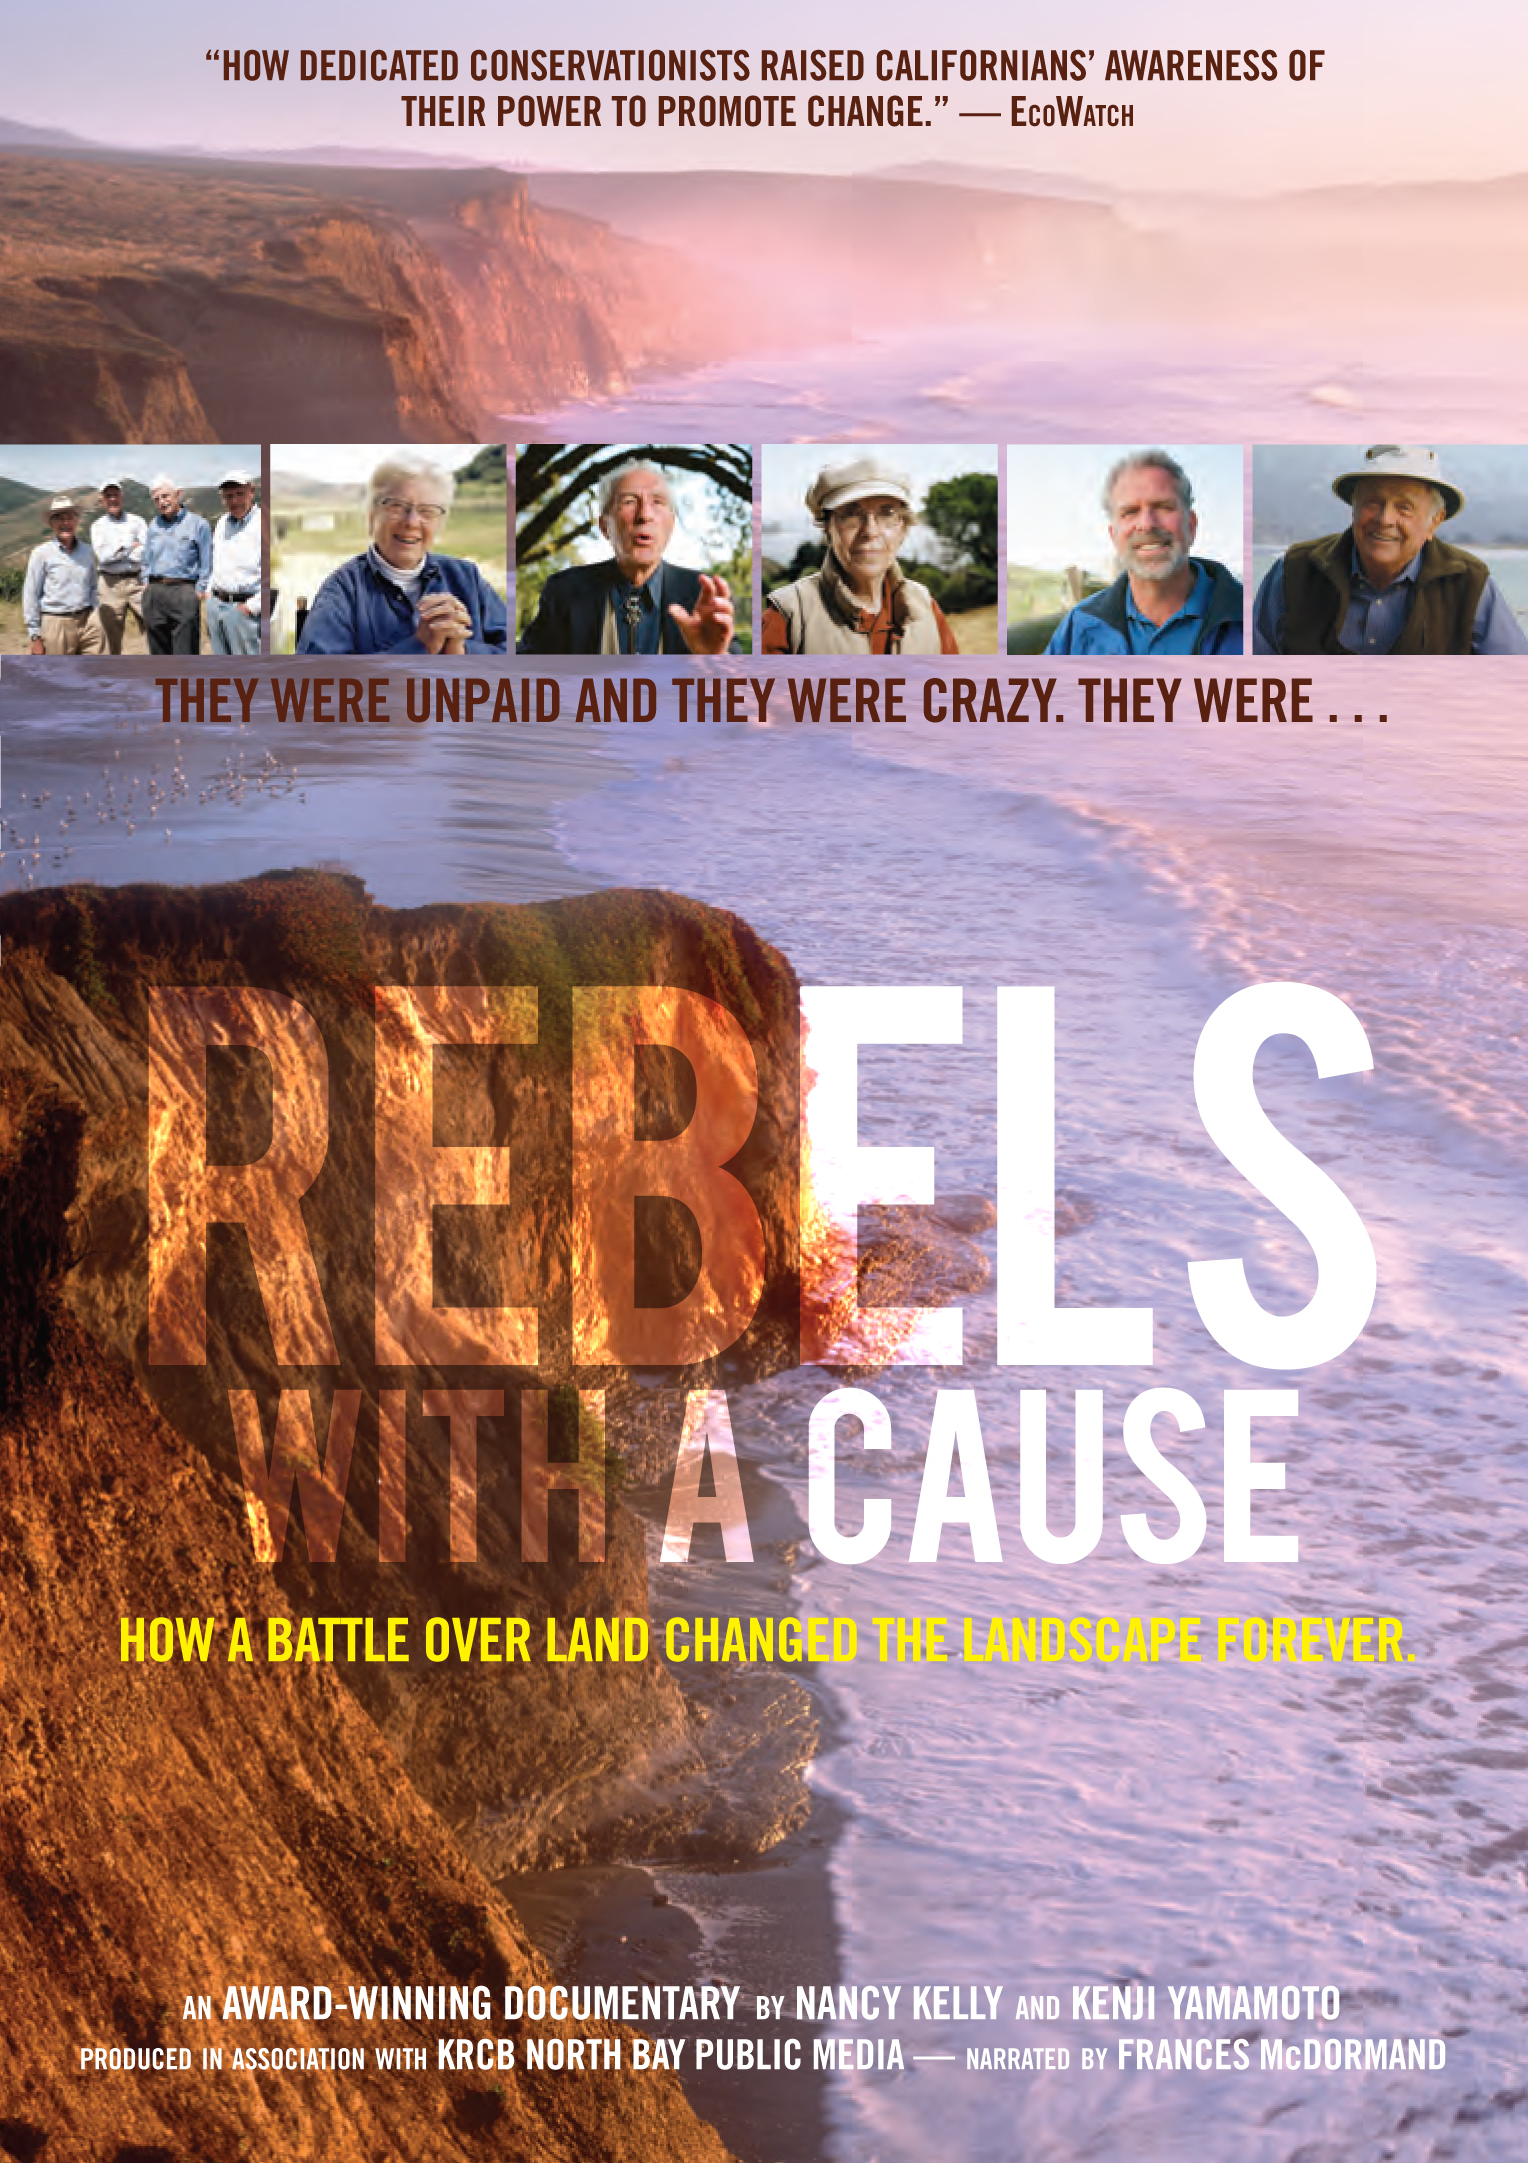 REBELS_DVD_Case_Cover_Template_v6